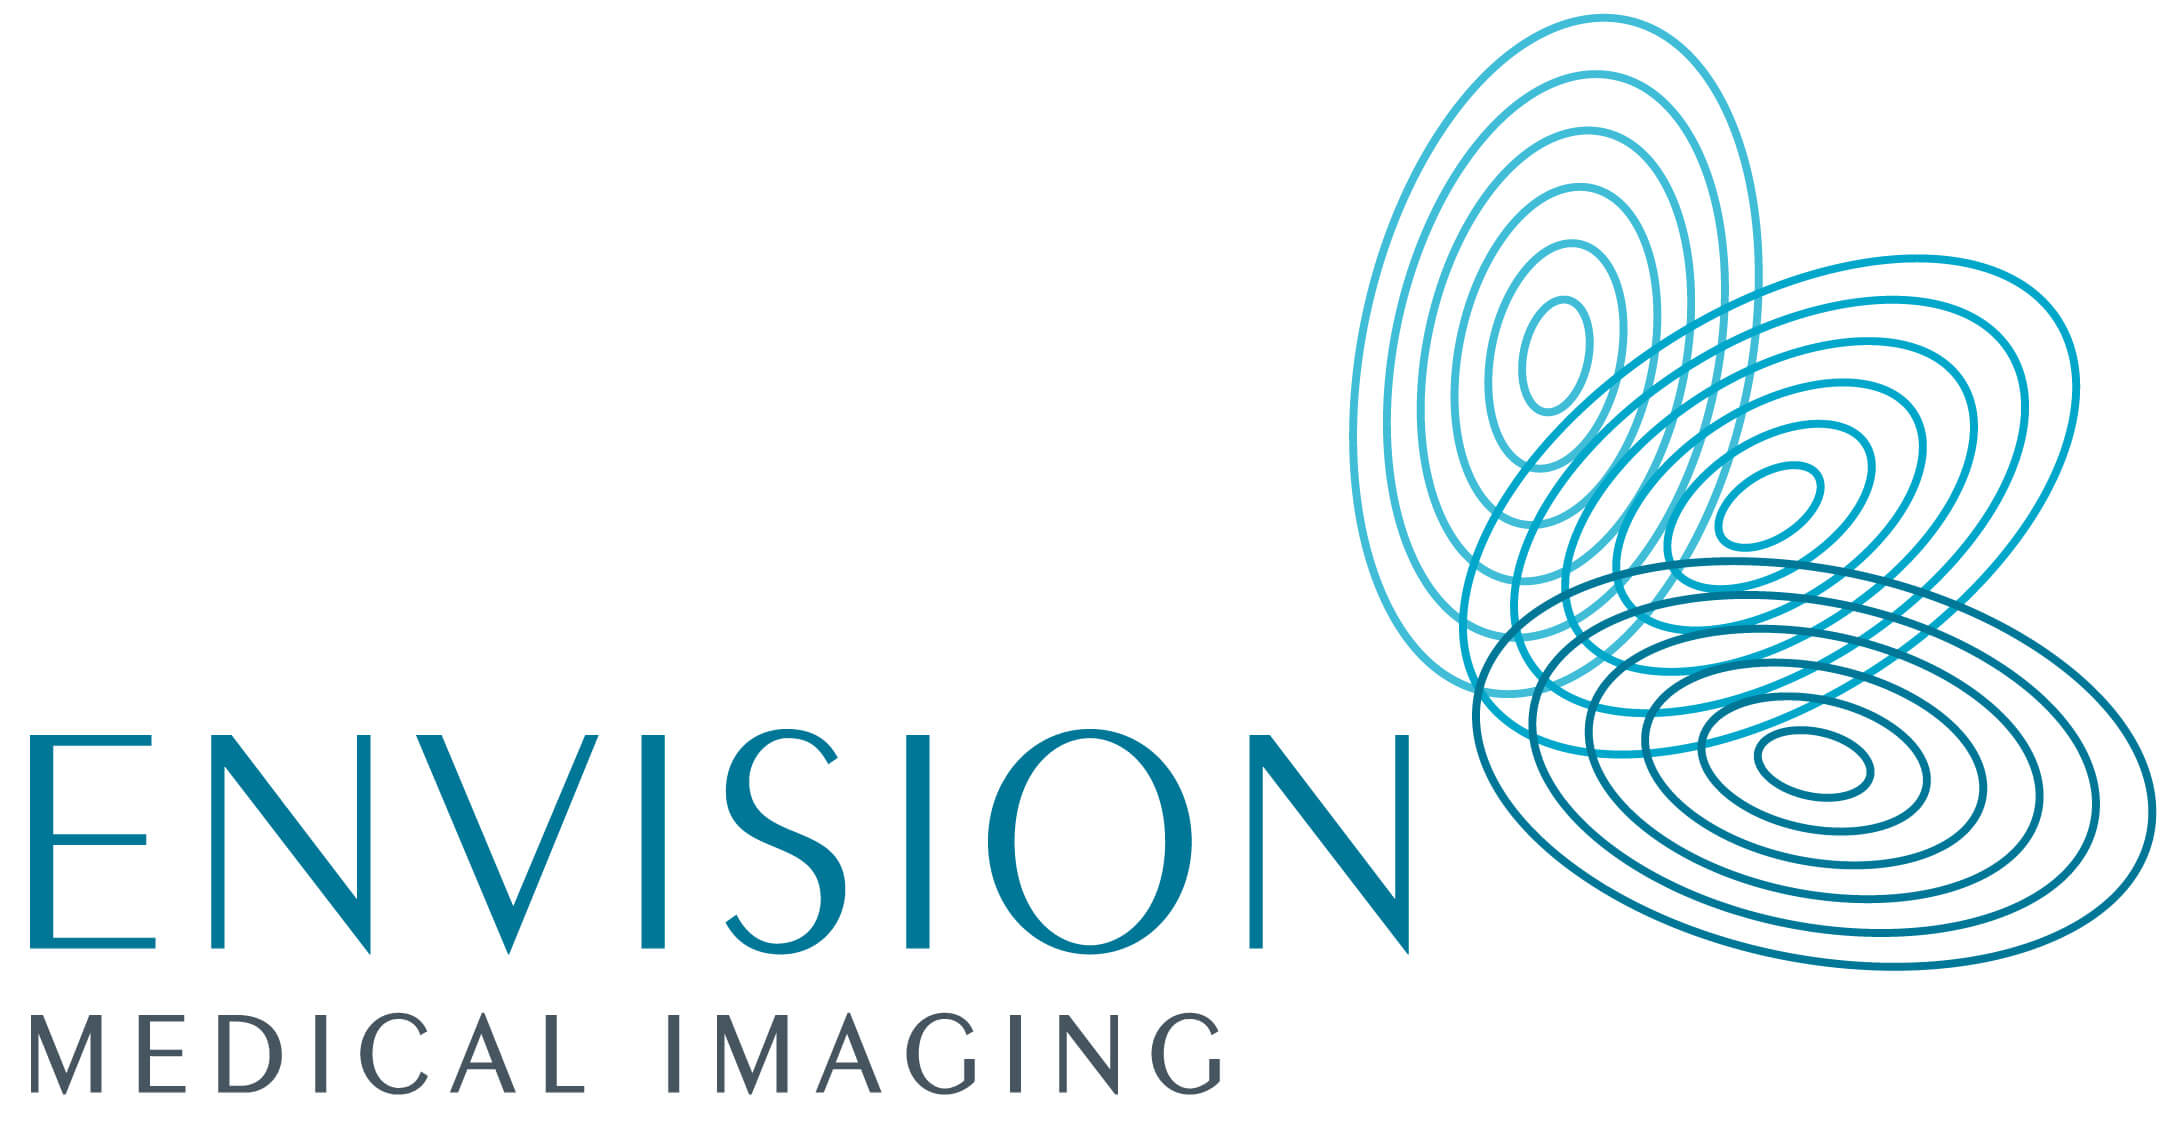 Envision-medical-imaging